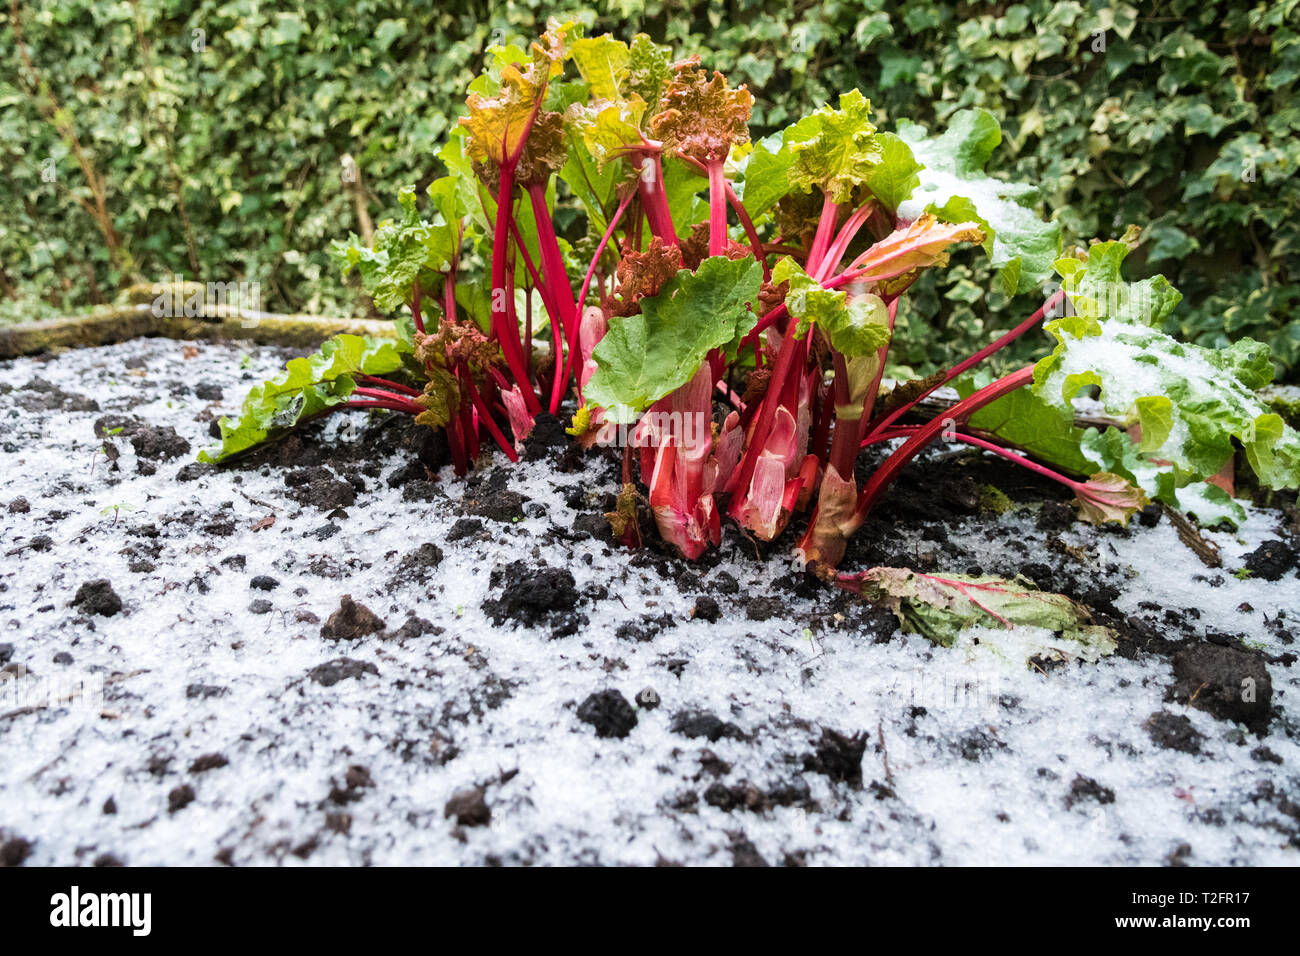 Stirlingshire, Scotland, UK. 2nd Apr, 2019. UK weather - after a lovely warm day, a sudden heavy hail shower broke over Stirlingshire in the early evening giving the bright red stalks of rhubarb a very wintery feel Credit: Kay Roxby/Alamy Live News Stock Photo